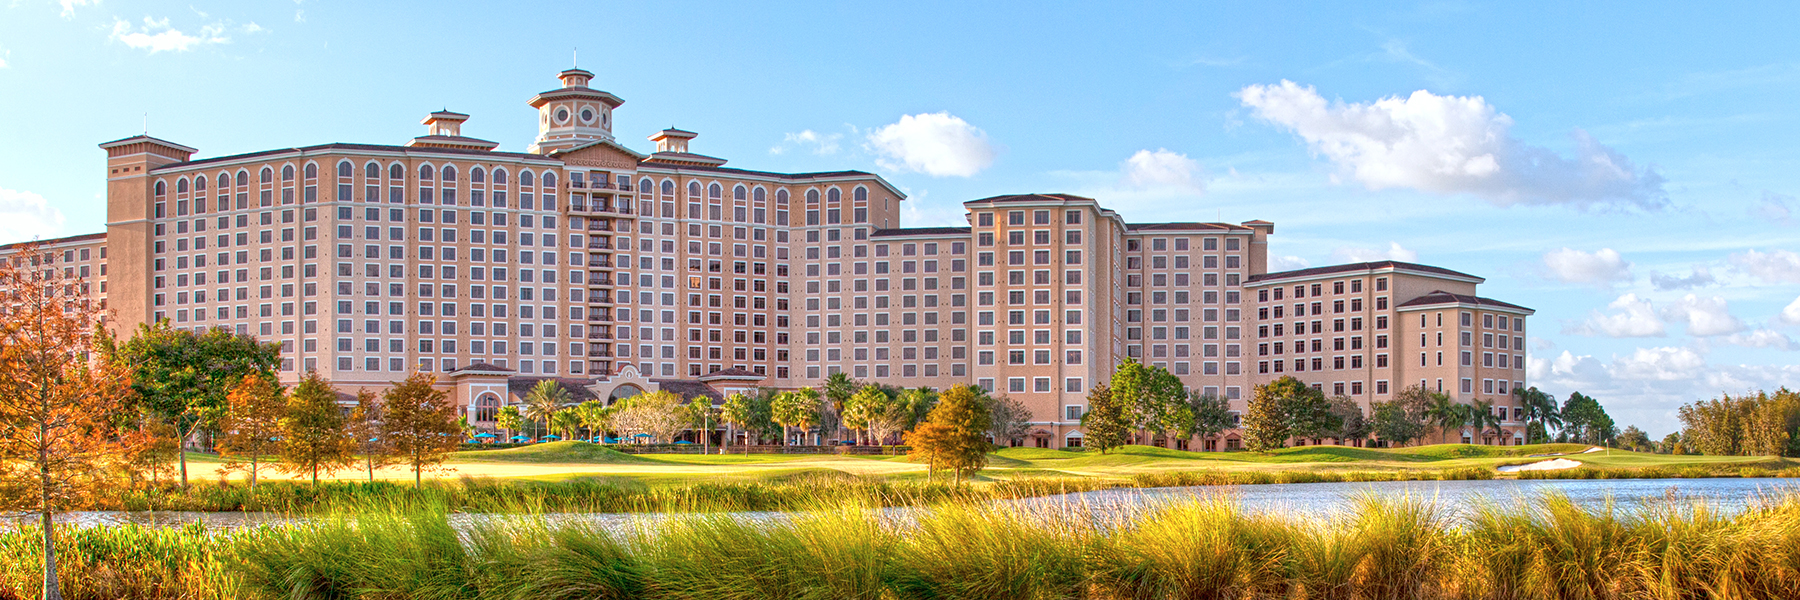 Exterior view of Rosen Shingle Creek hotel with golf course in foreground